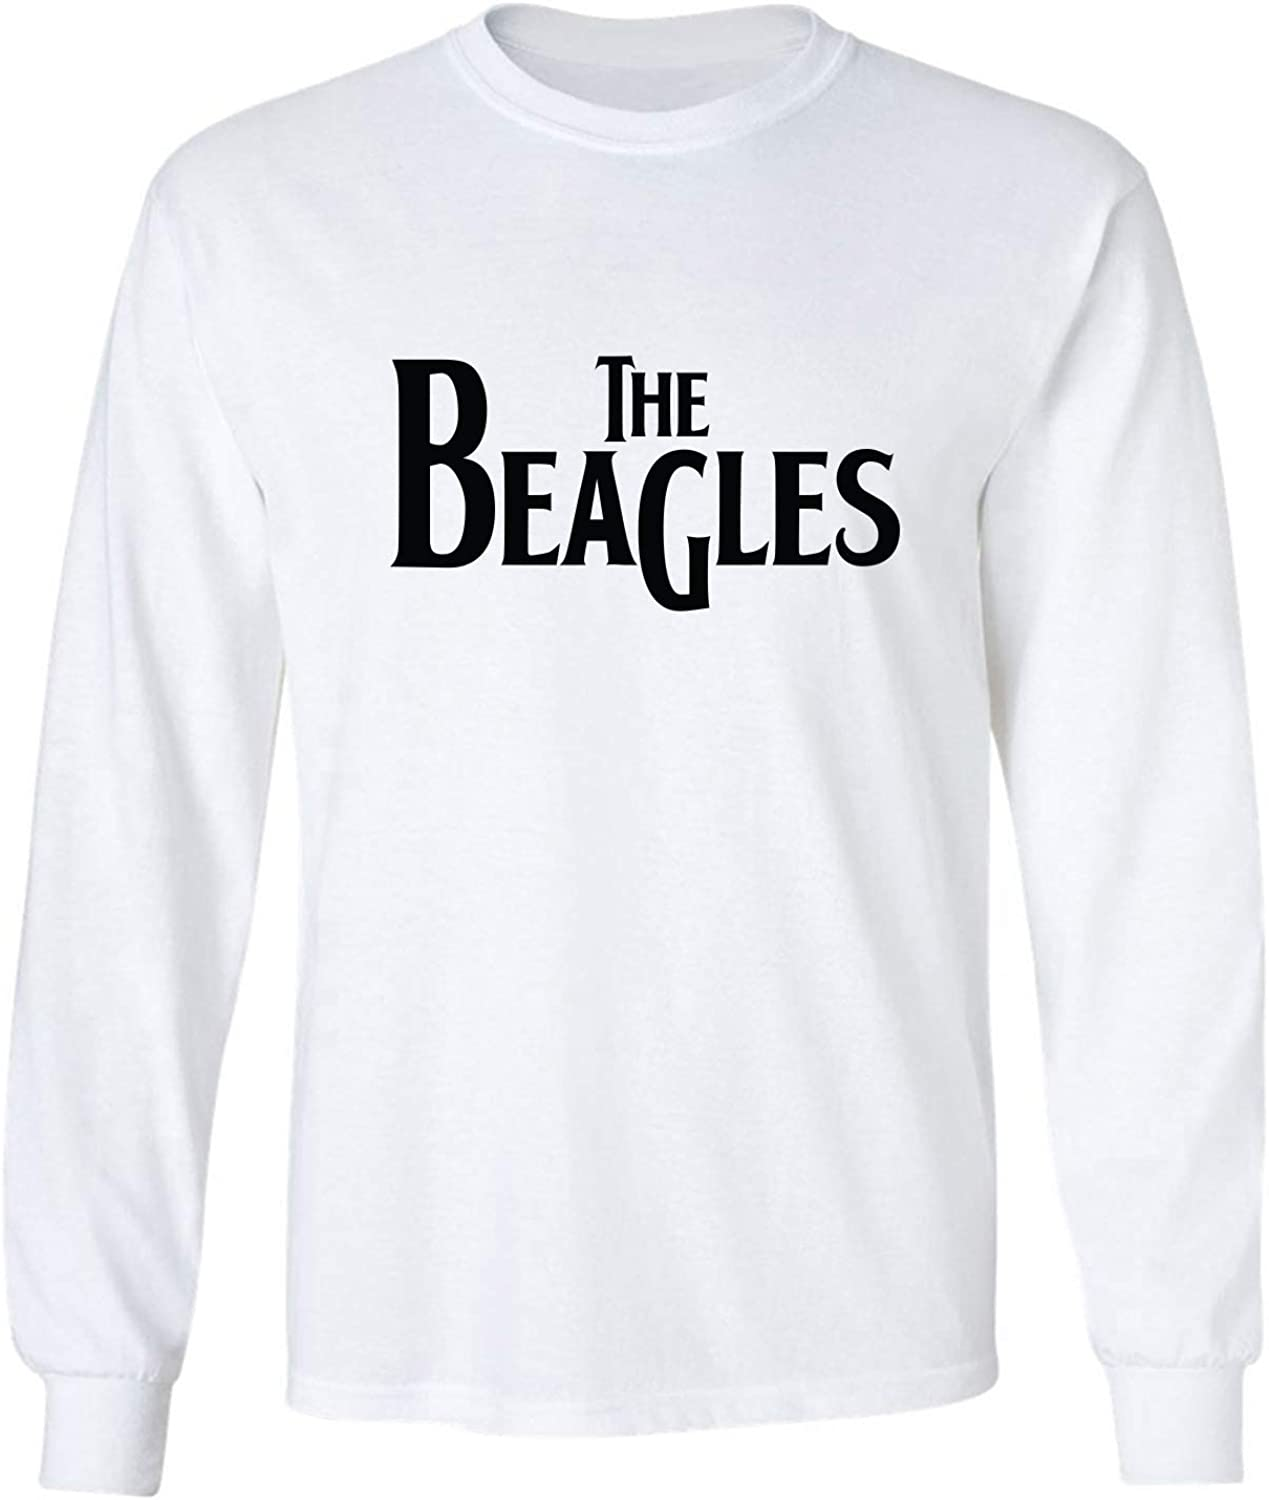 The Beagles Adult Long Sleeve T-Shirt in White - XXXX-Large